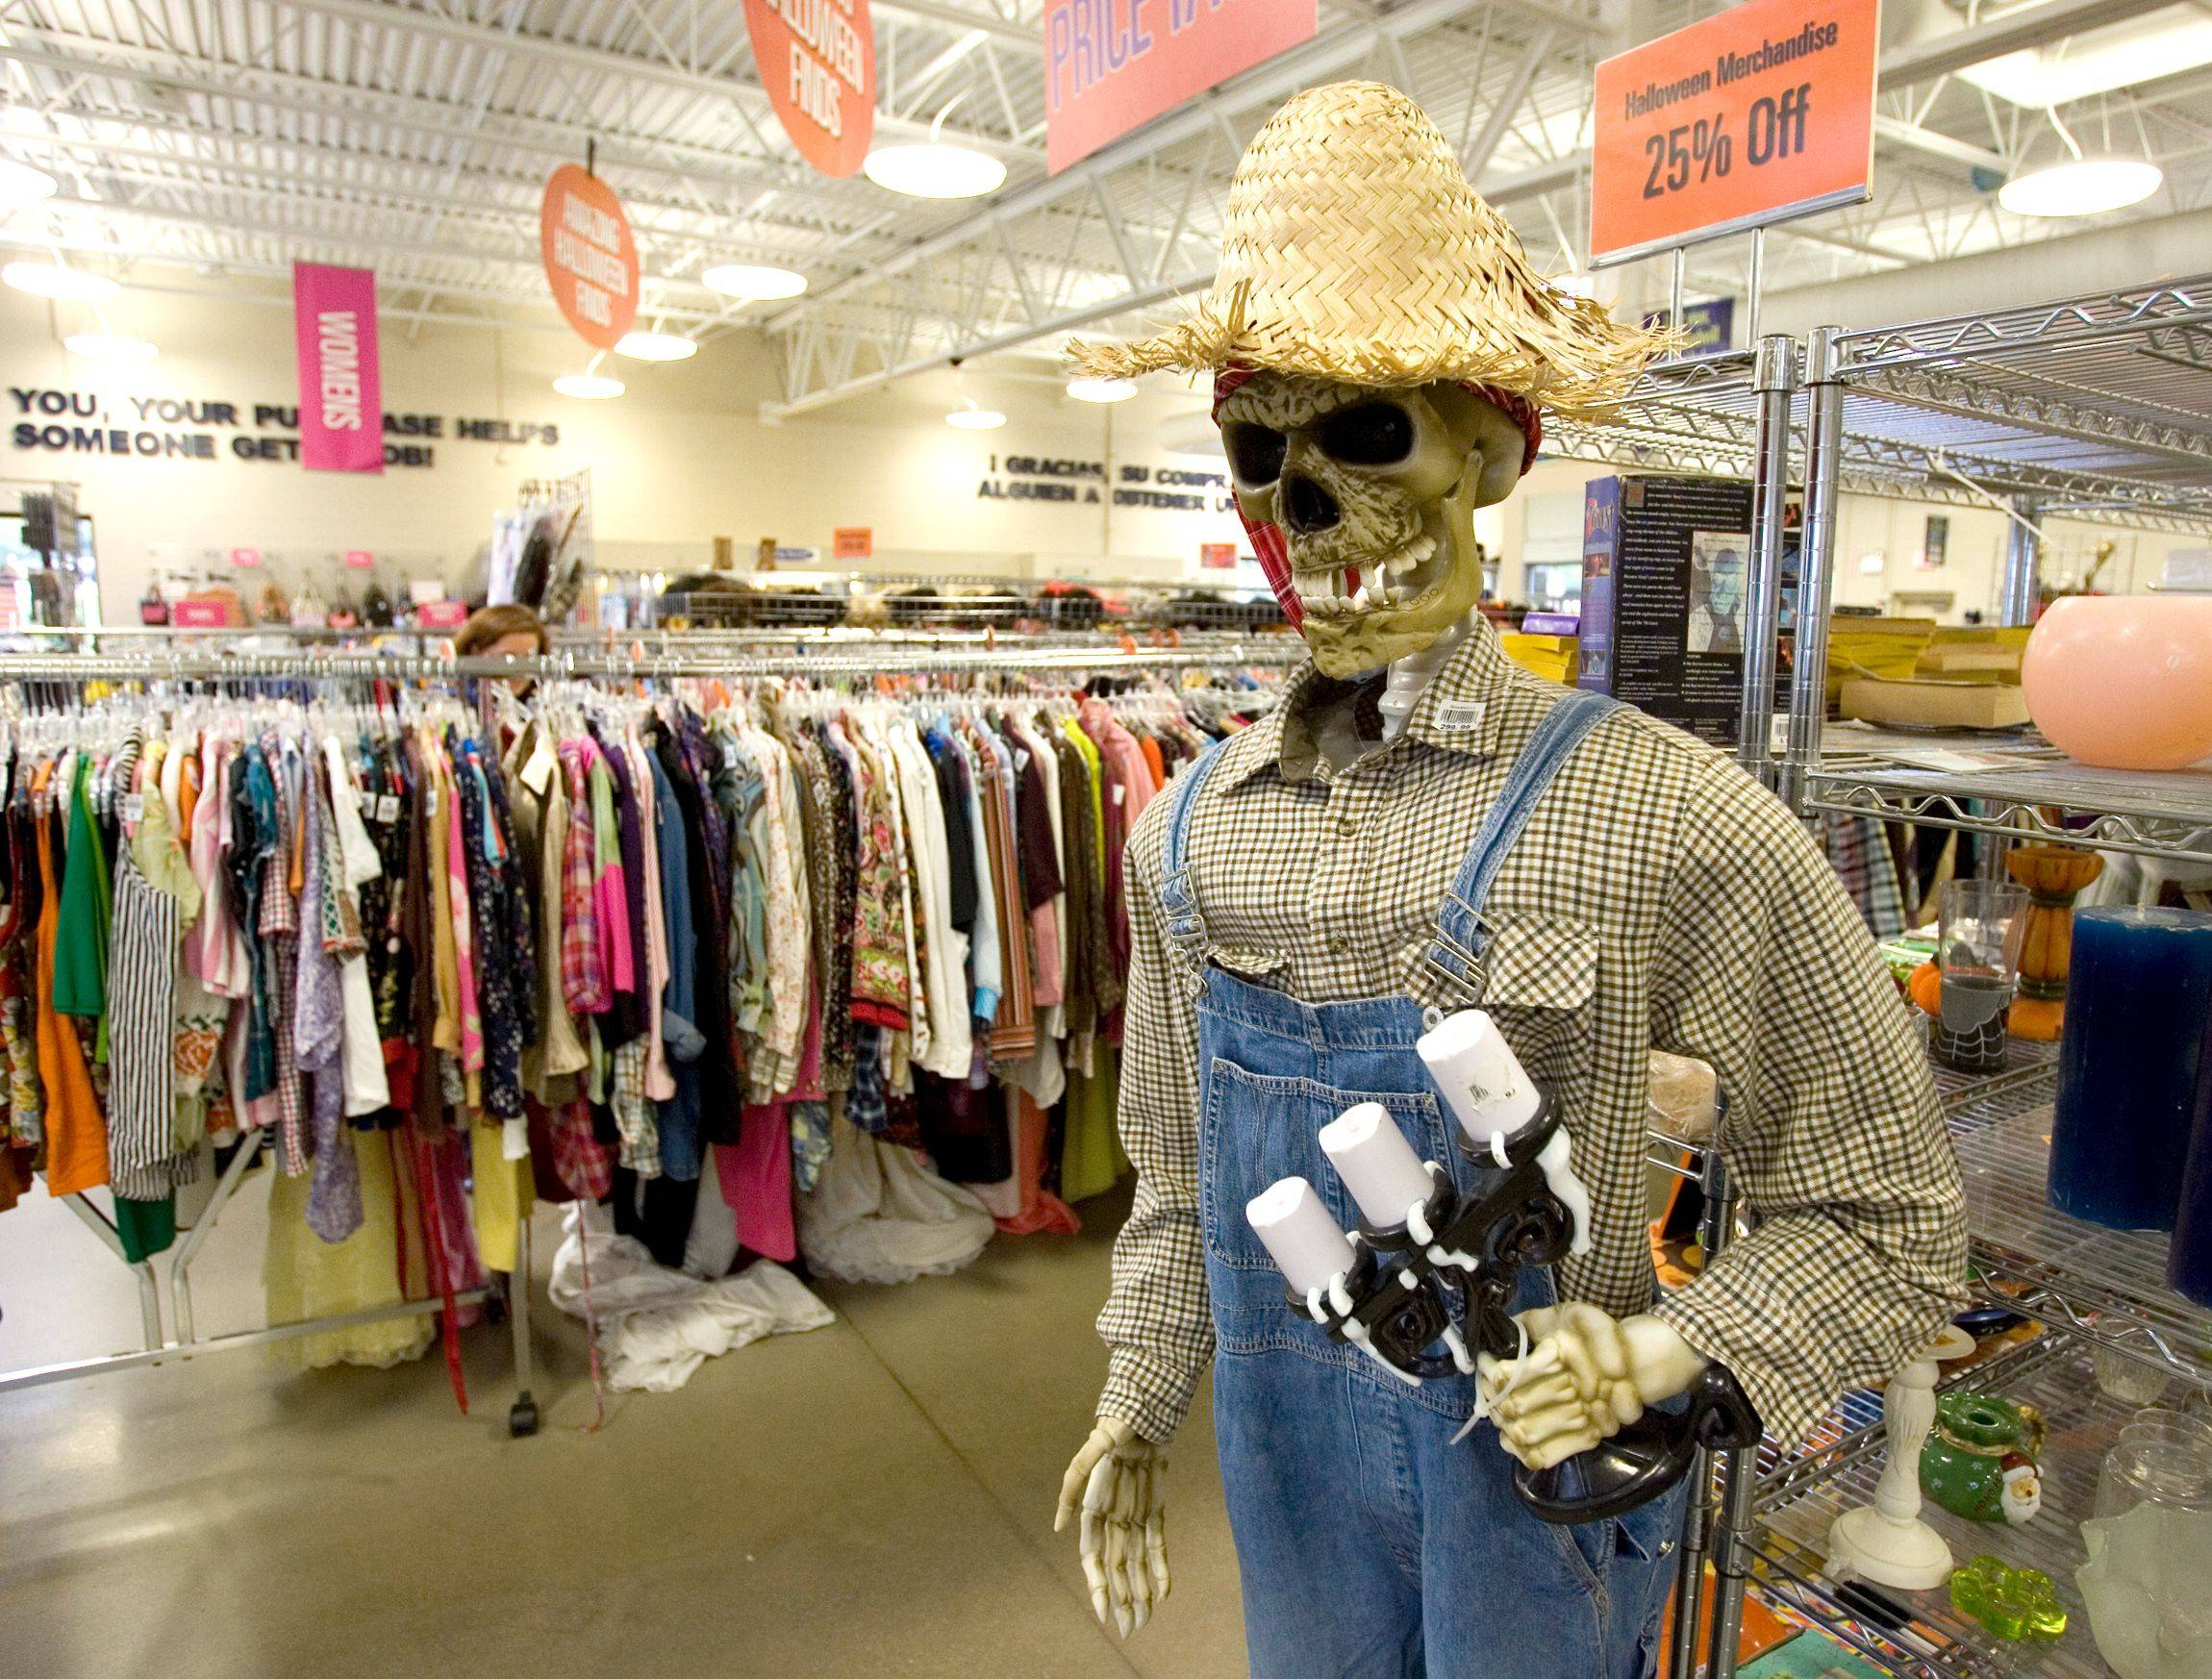 Halloween decorations abound at the Goodwill store on North Avenue in Glendale Heights.